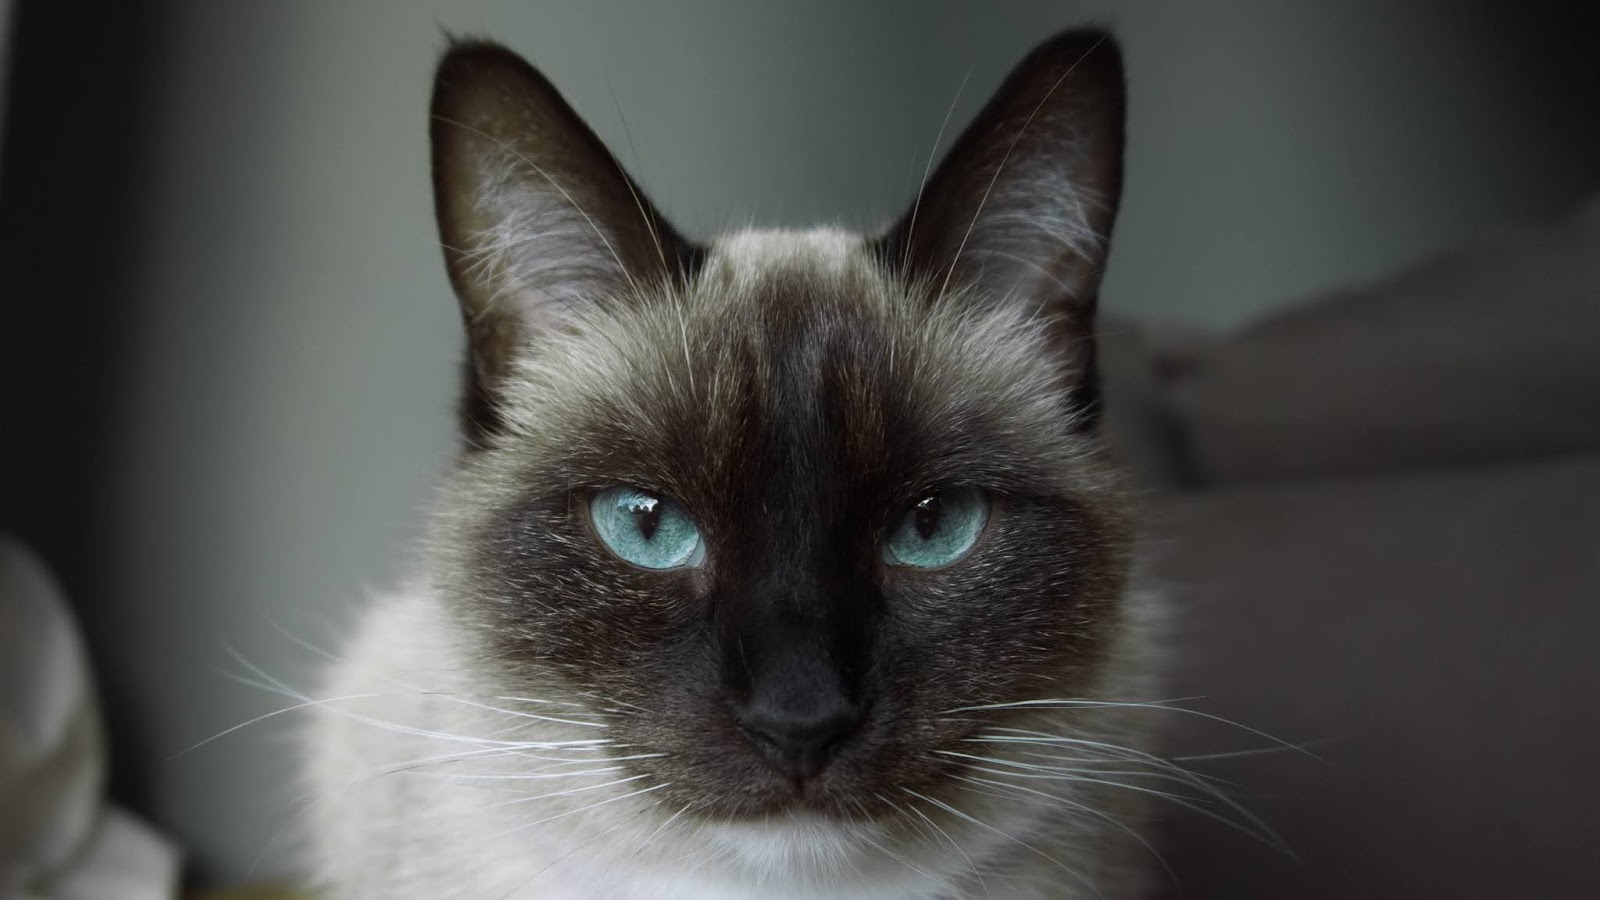 Close up photo of black and white Siamese cat,cat images